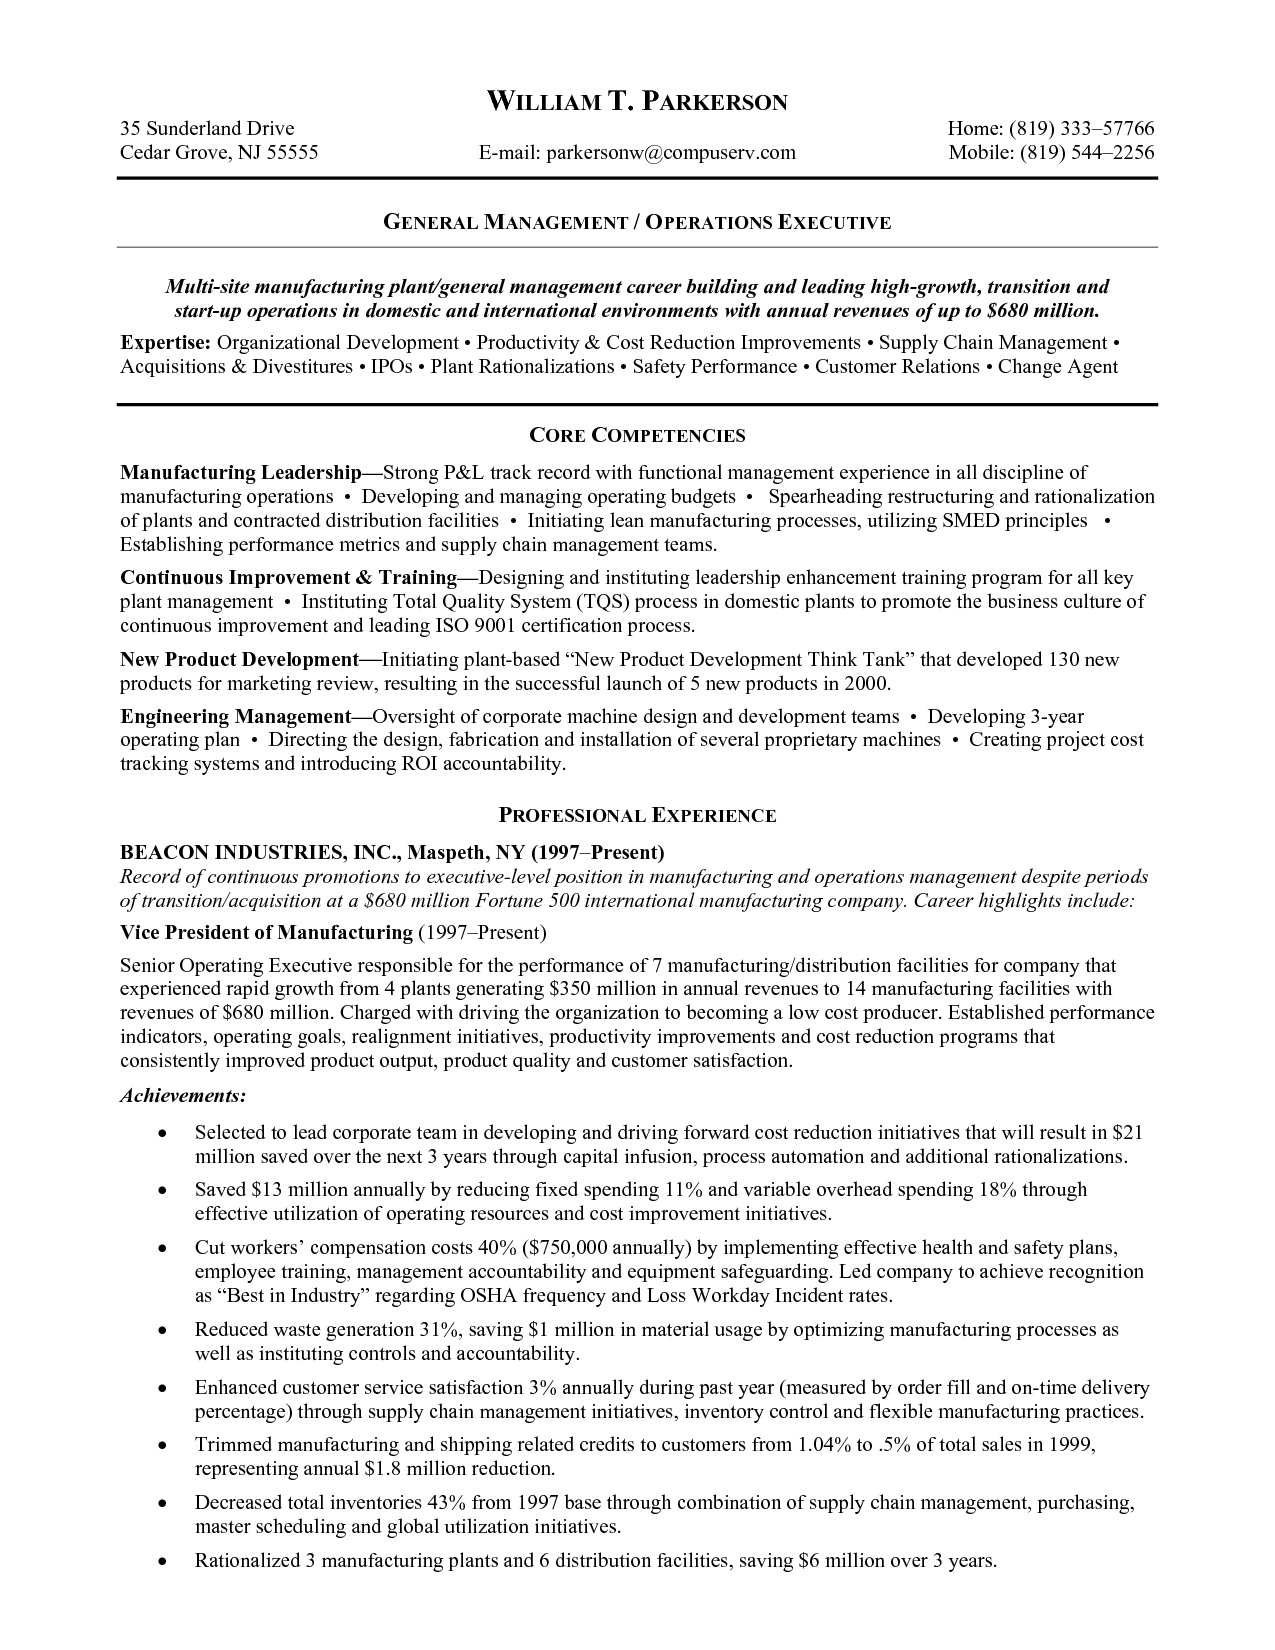 Resume Mission Statement Examples General Manufacturing Resume Samples Objective Examples Free Edit